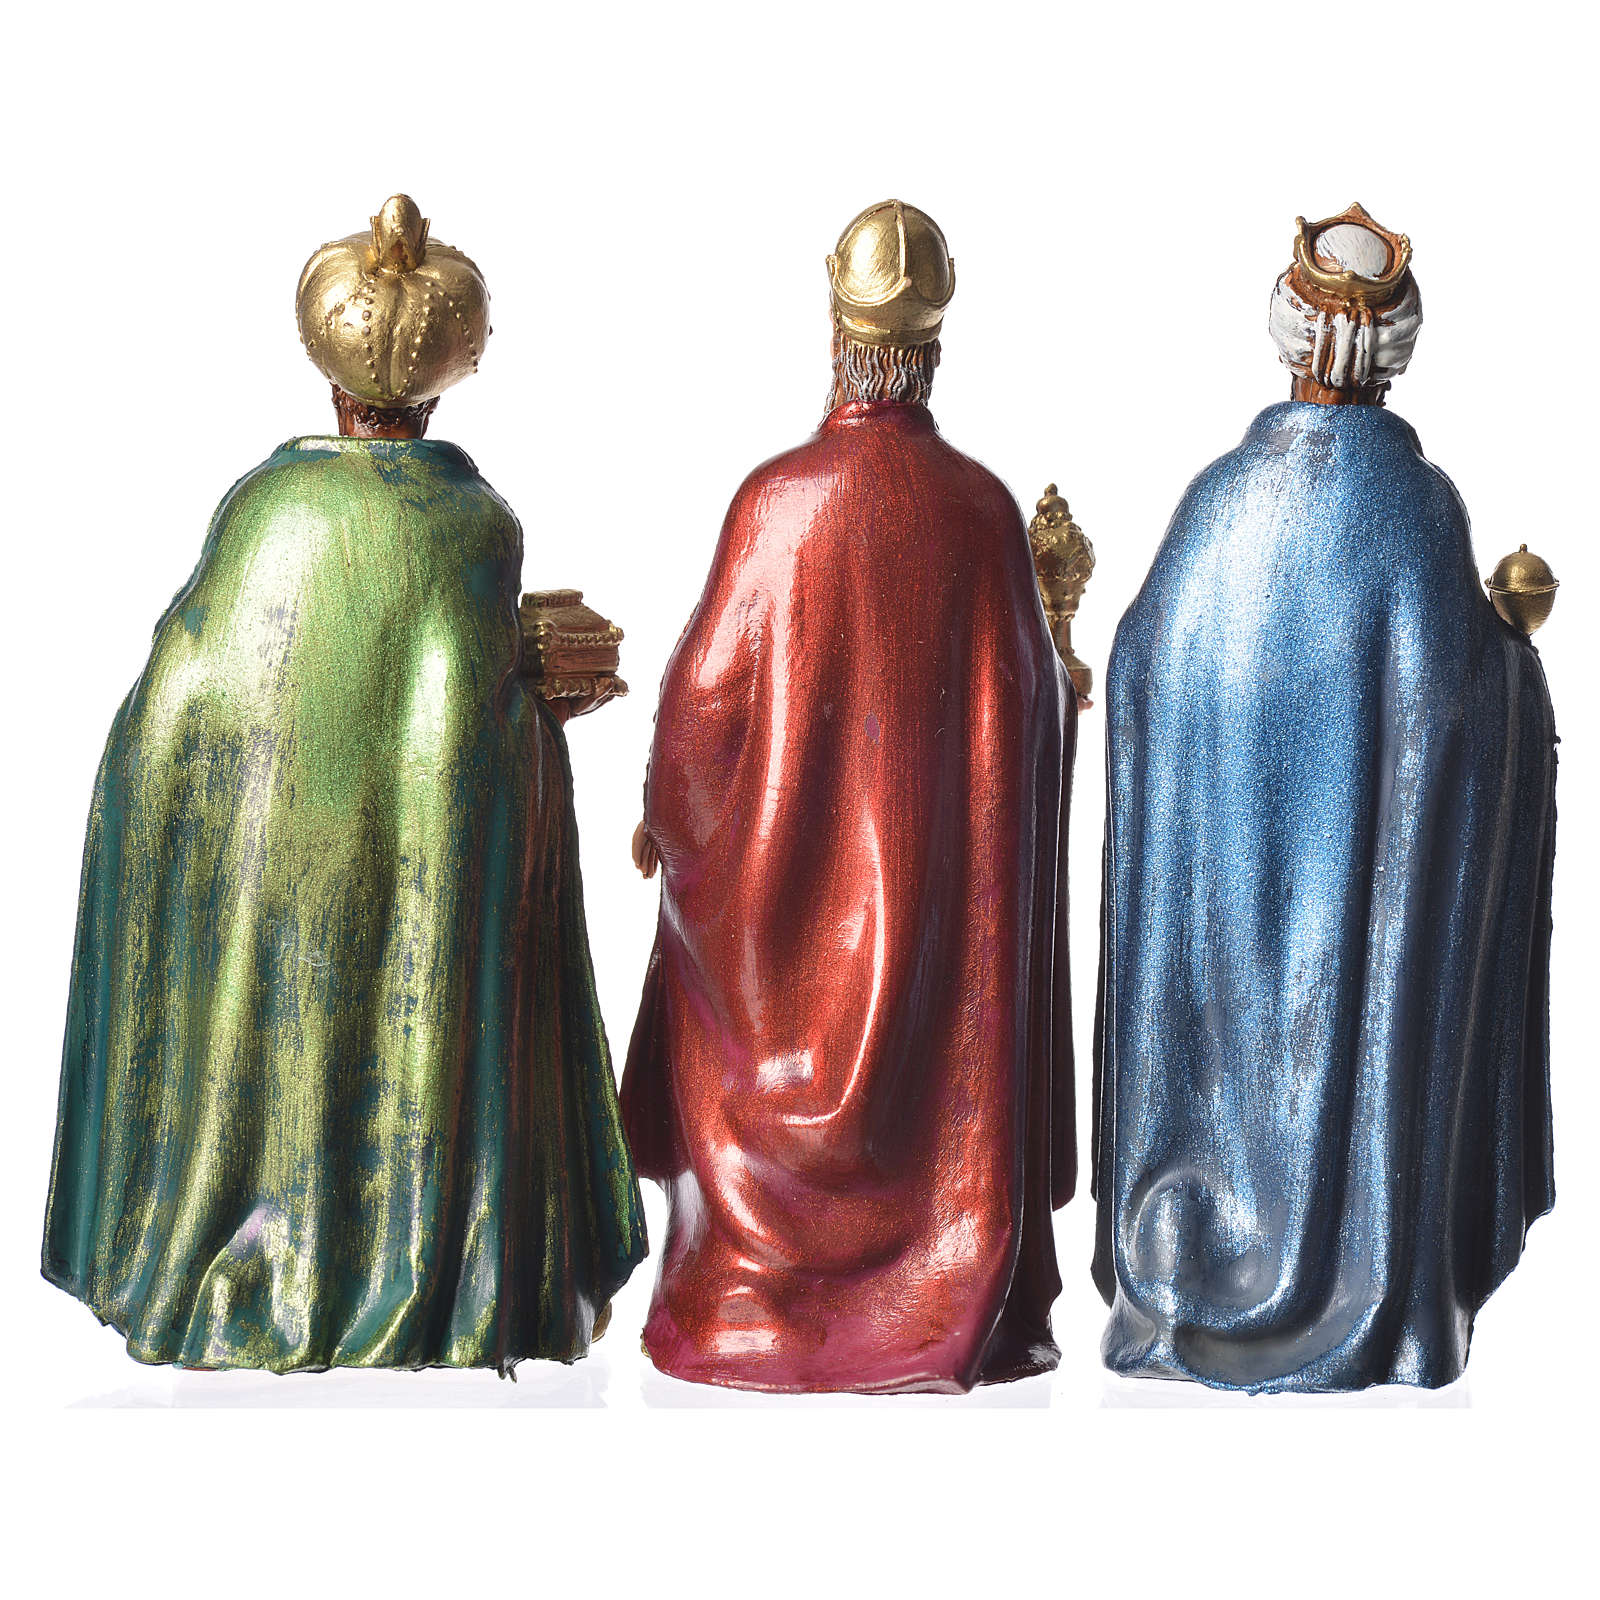 Three Kings, 3 nativity figurines, 12cm Moranduzzo 4